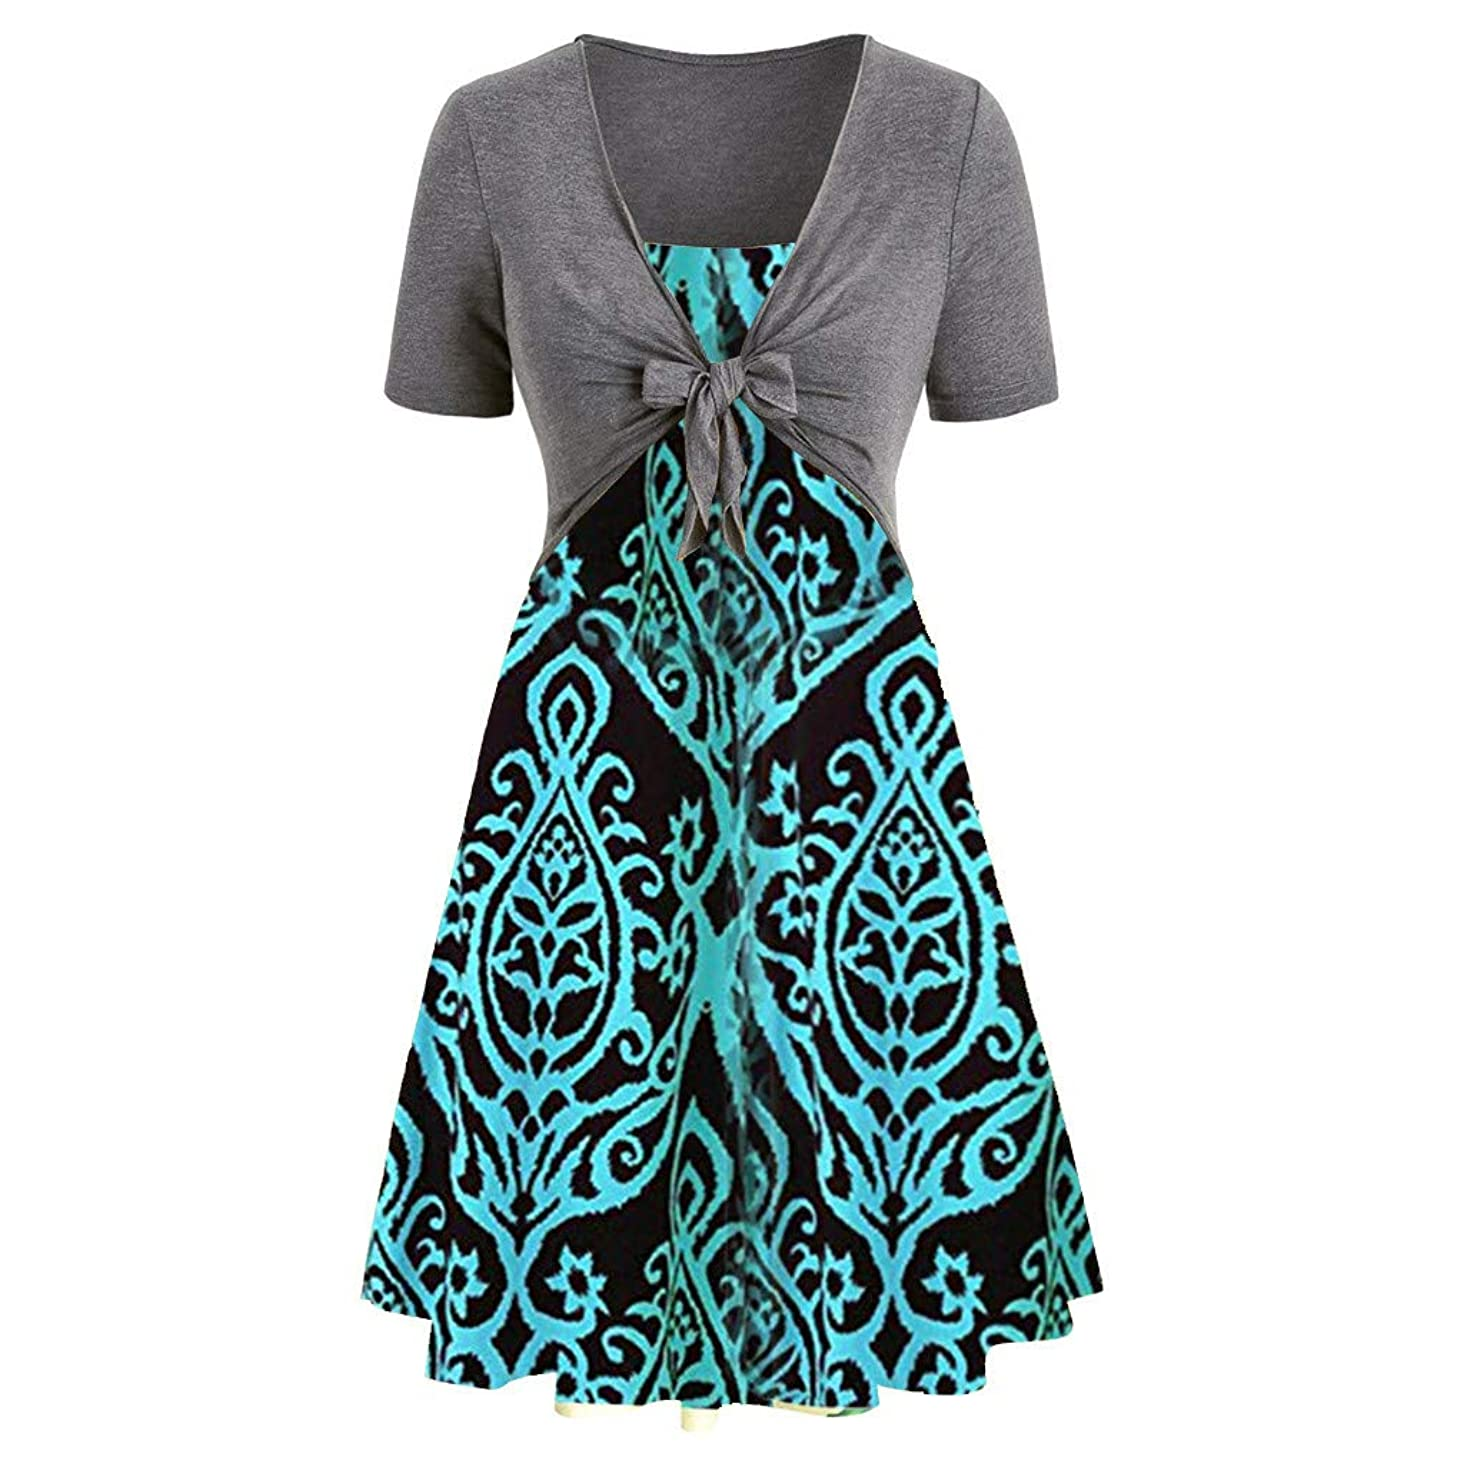 Daily Wear Dresses for Women,TIFENNY Lady Fashion Short Sleeve Front Criss Cross Top + Floral Print Mini Dress Suits